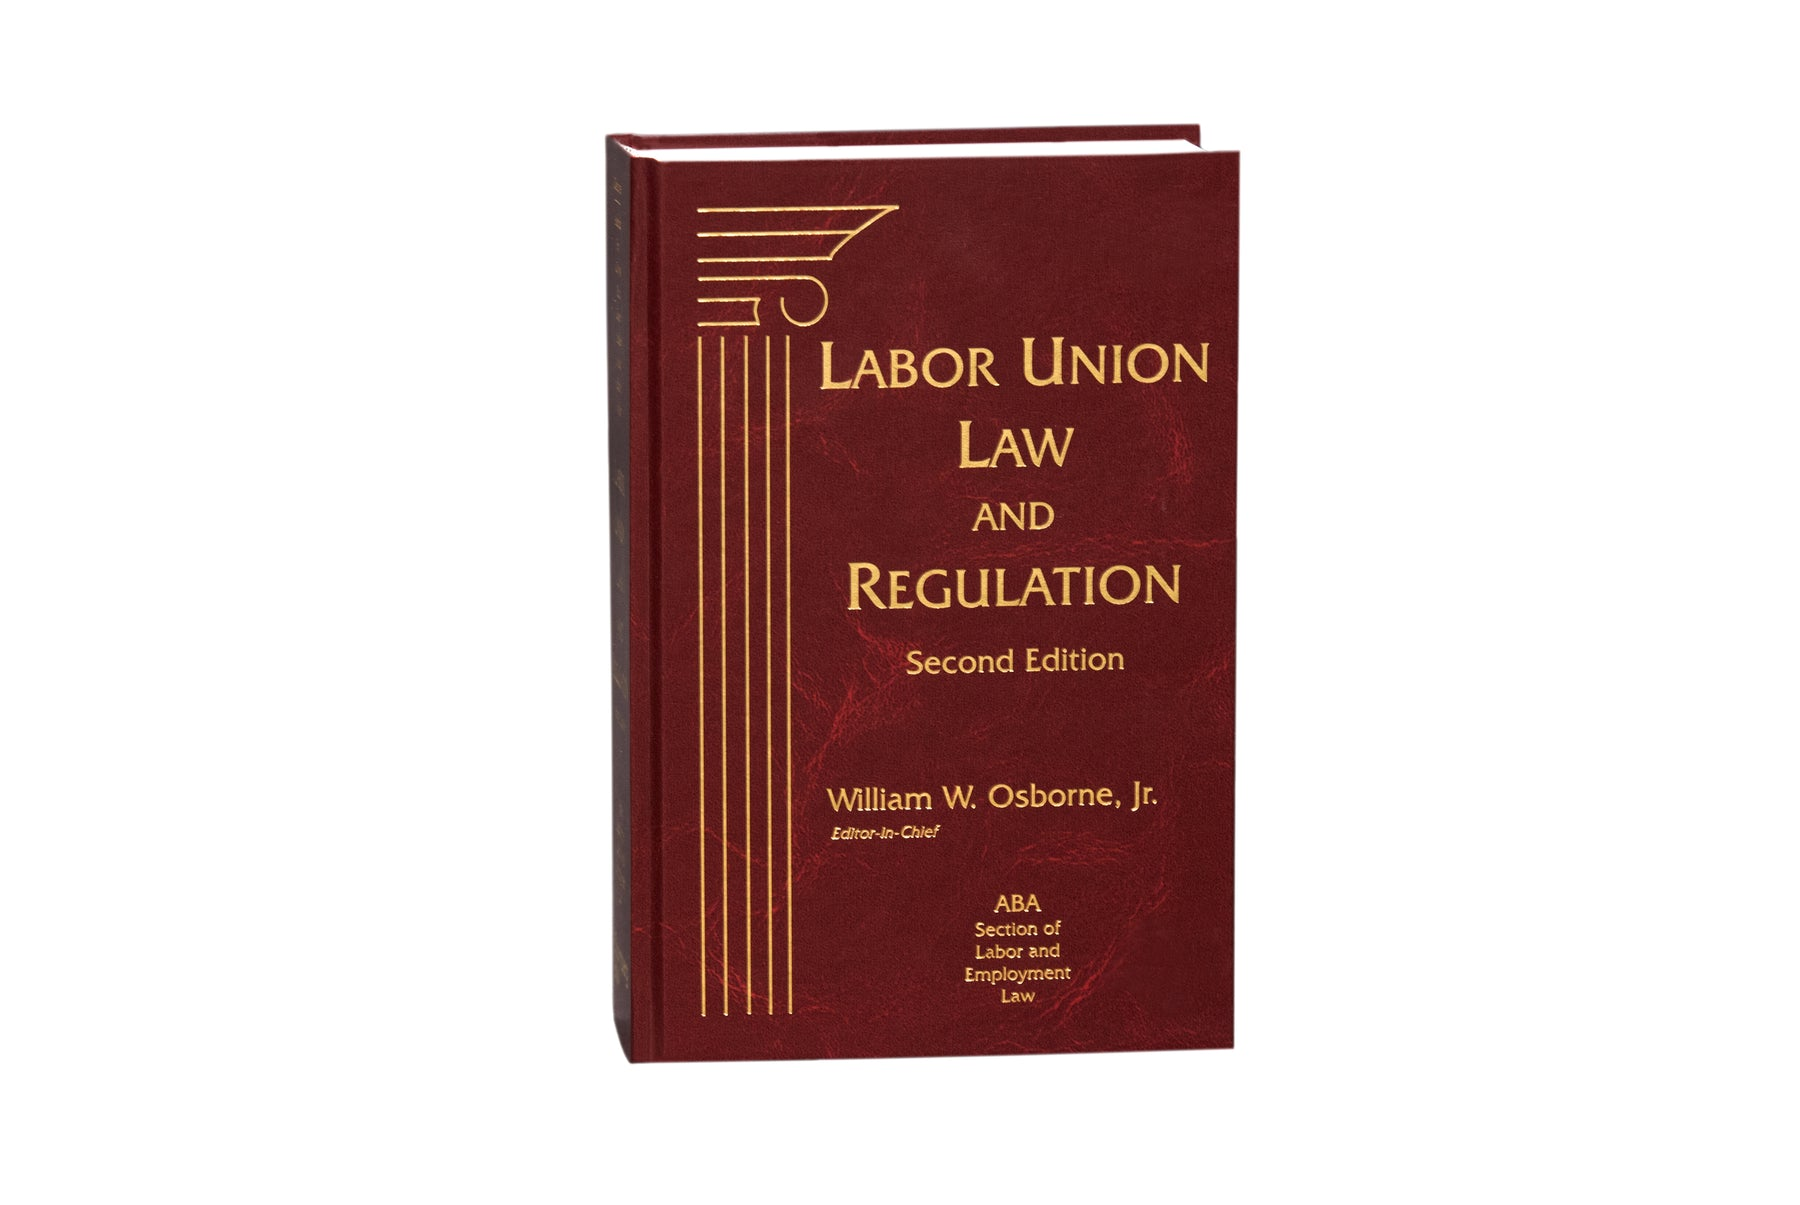 Labor Union Law and Regulation, Second Edition